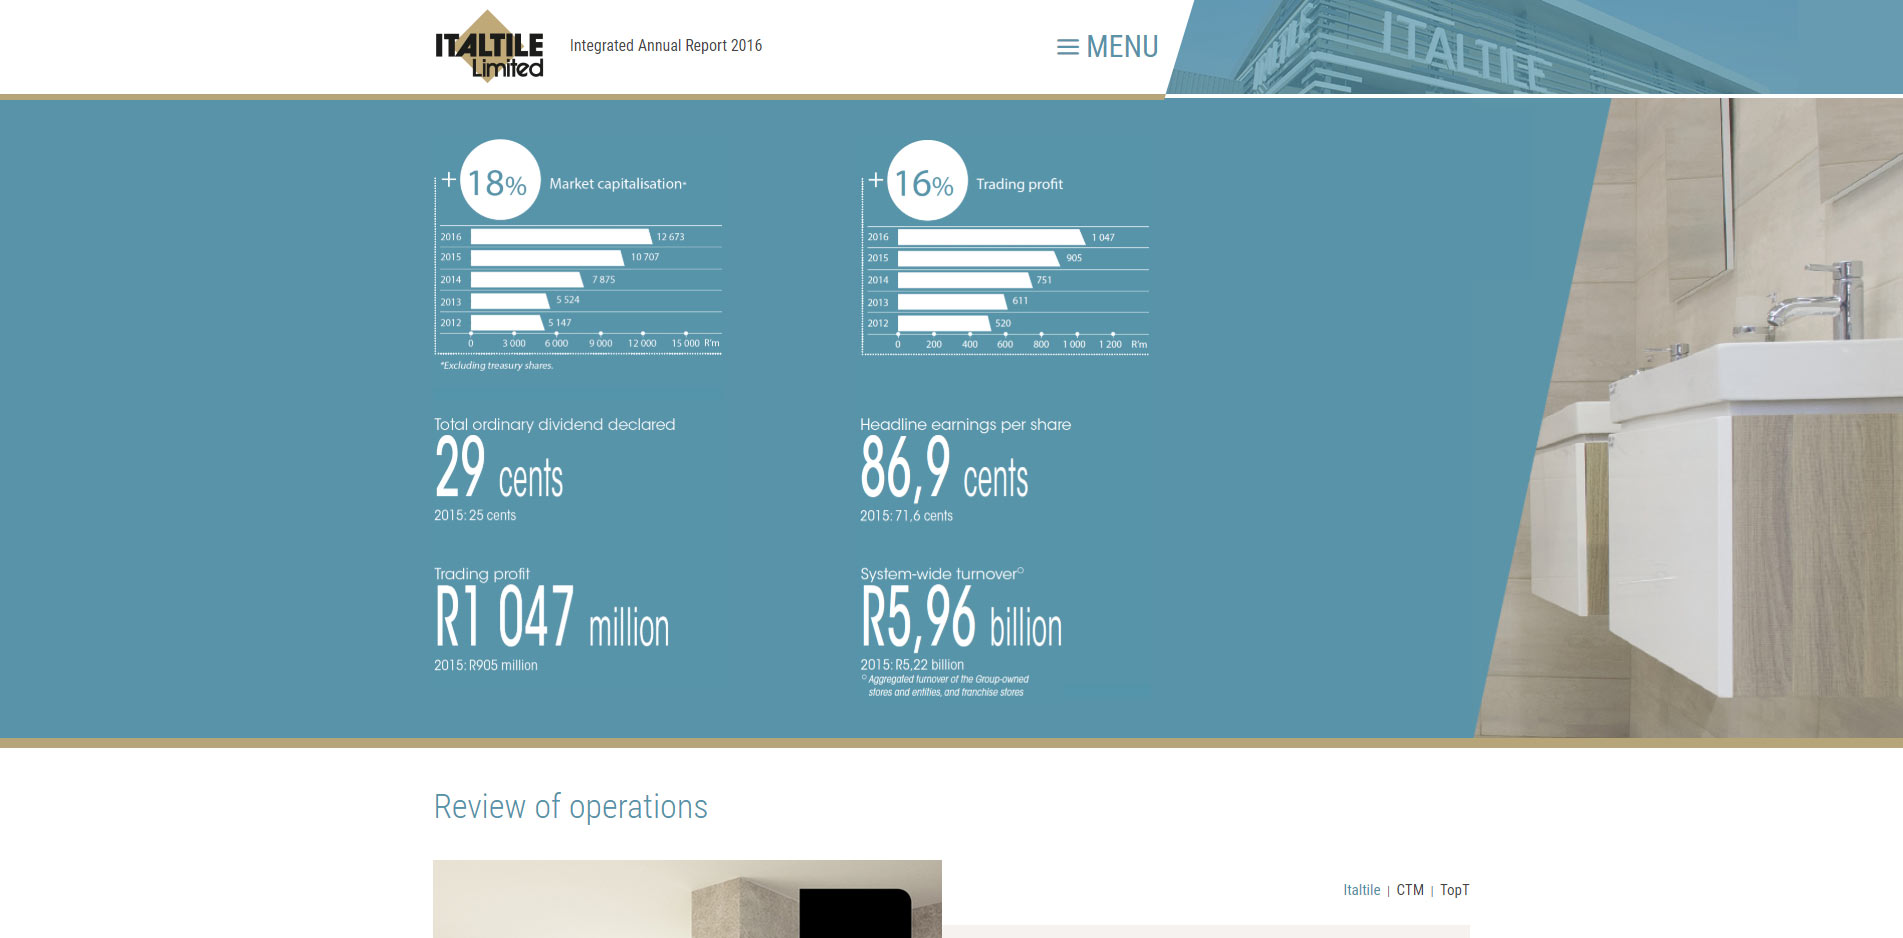 Italtile Integrated Annual Report 2016 | Image 1111